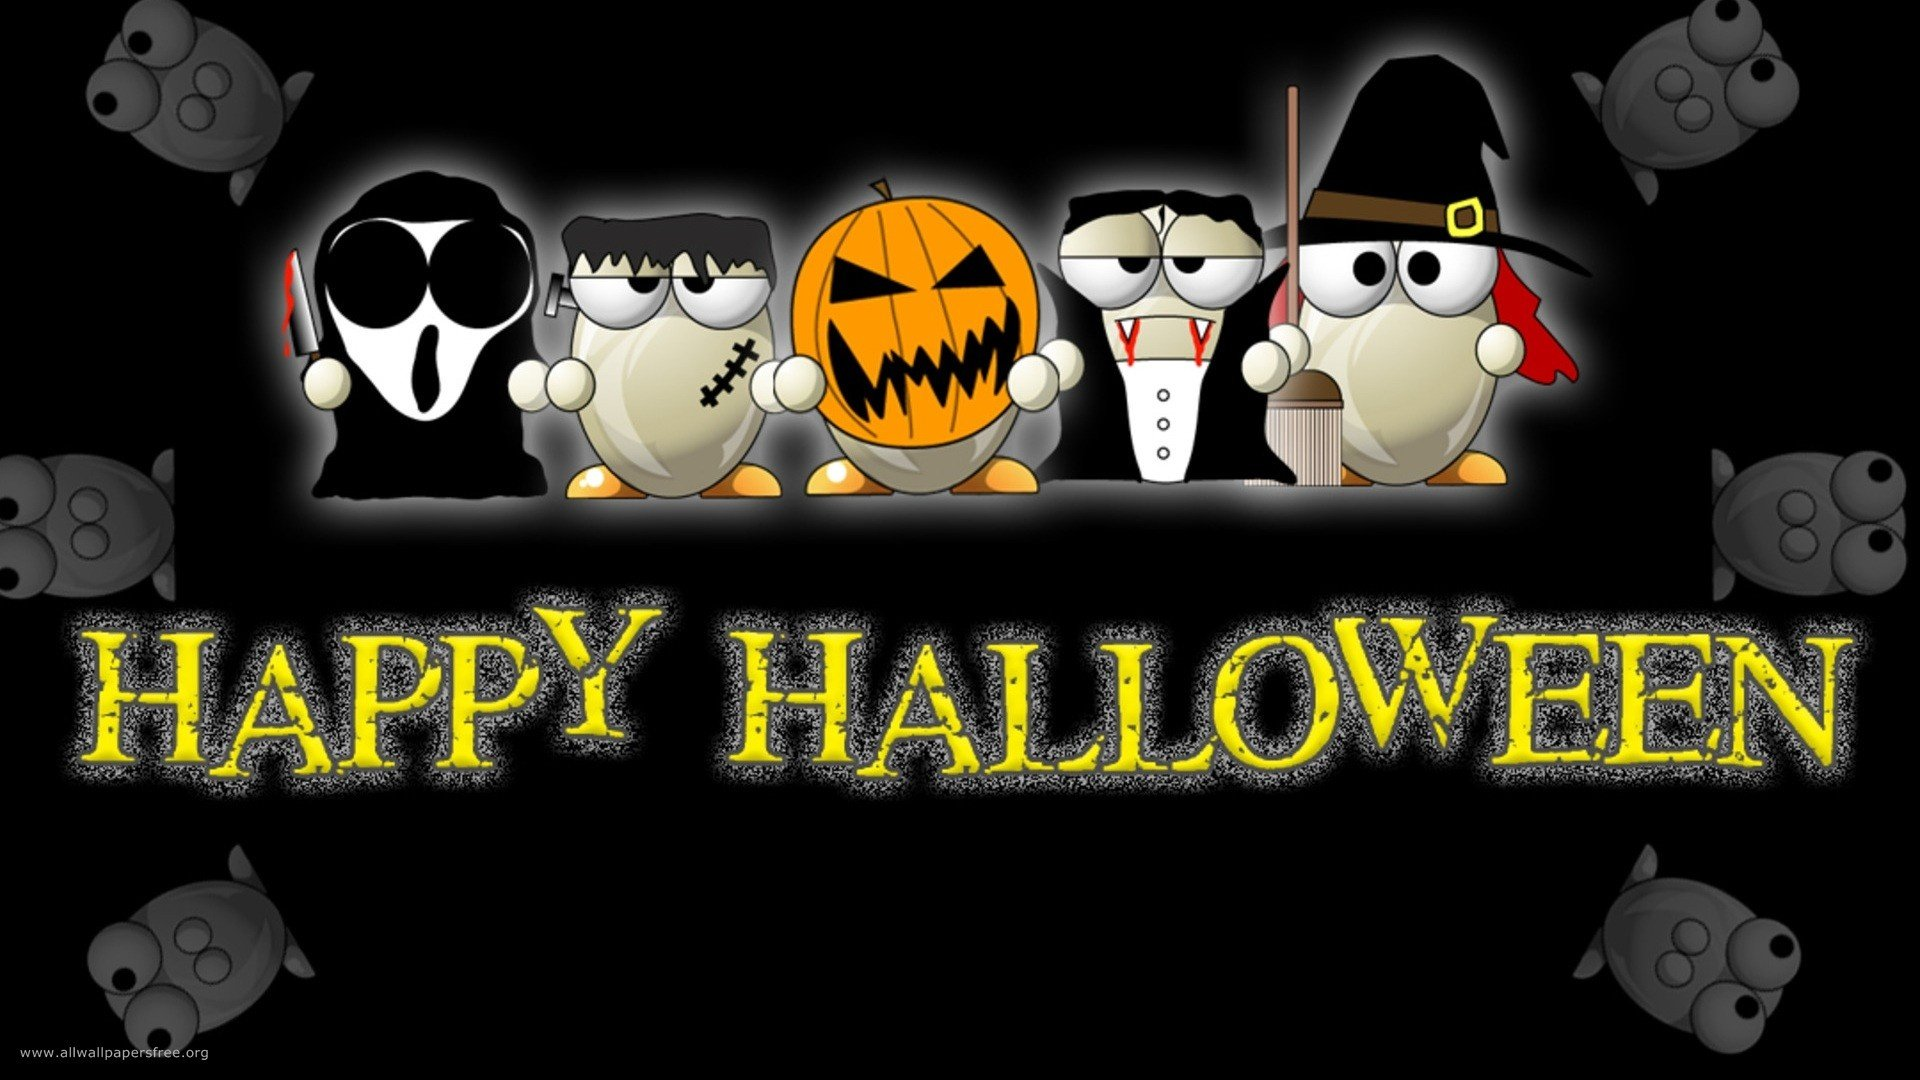 3d halloween desktop wallpaper   wwwwallpapers in hdcom 1920x1080